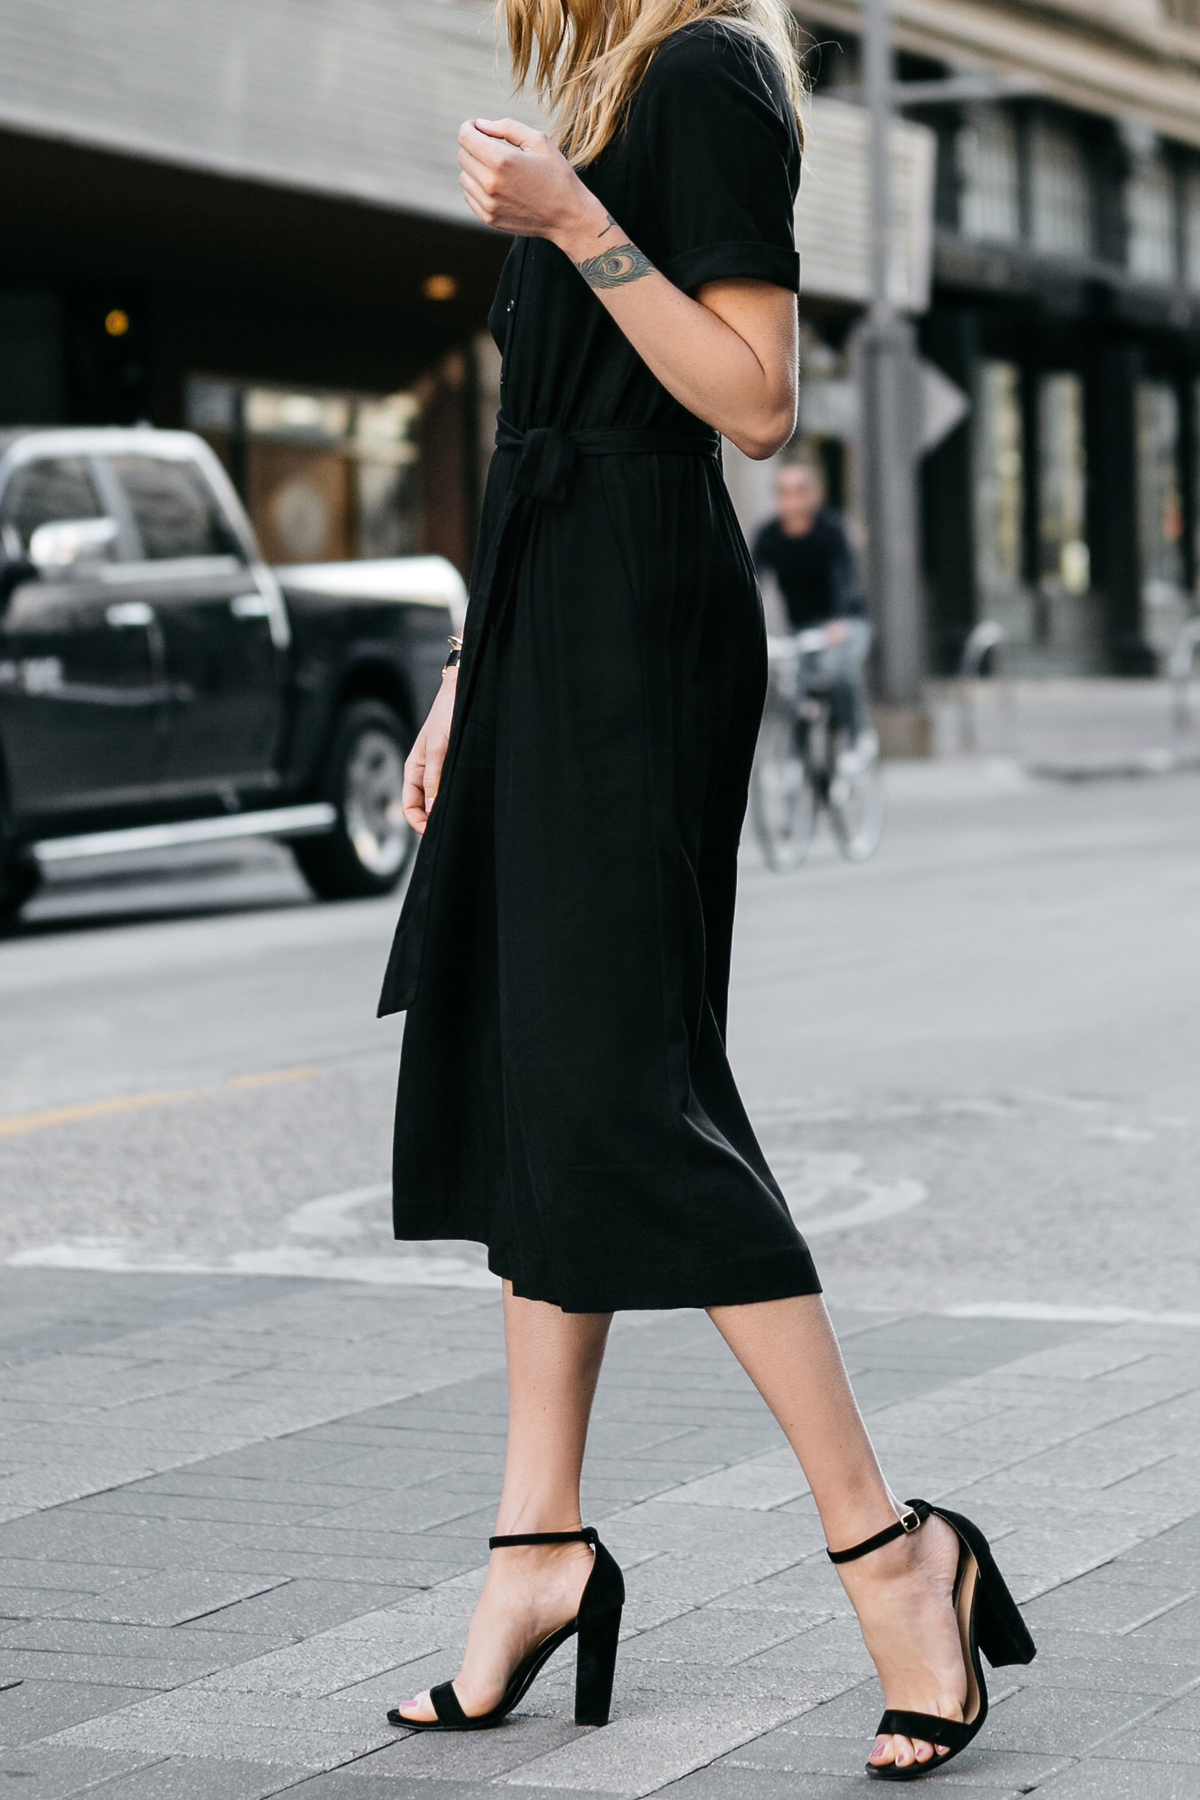 Fashion Jackson, Dallas Blogger, Fashion Blogger, Street Style, Ann Taylor Culotte Black Jumpsuit, Steve Madden Carrson Heeled Sandals, Black Ankle Strap Sandals